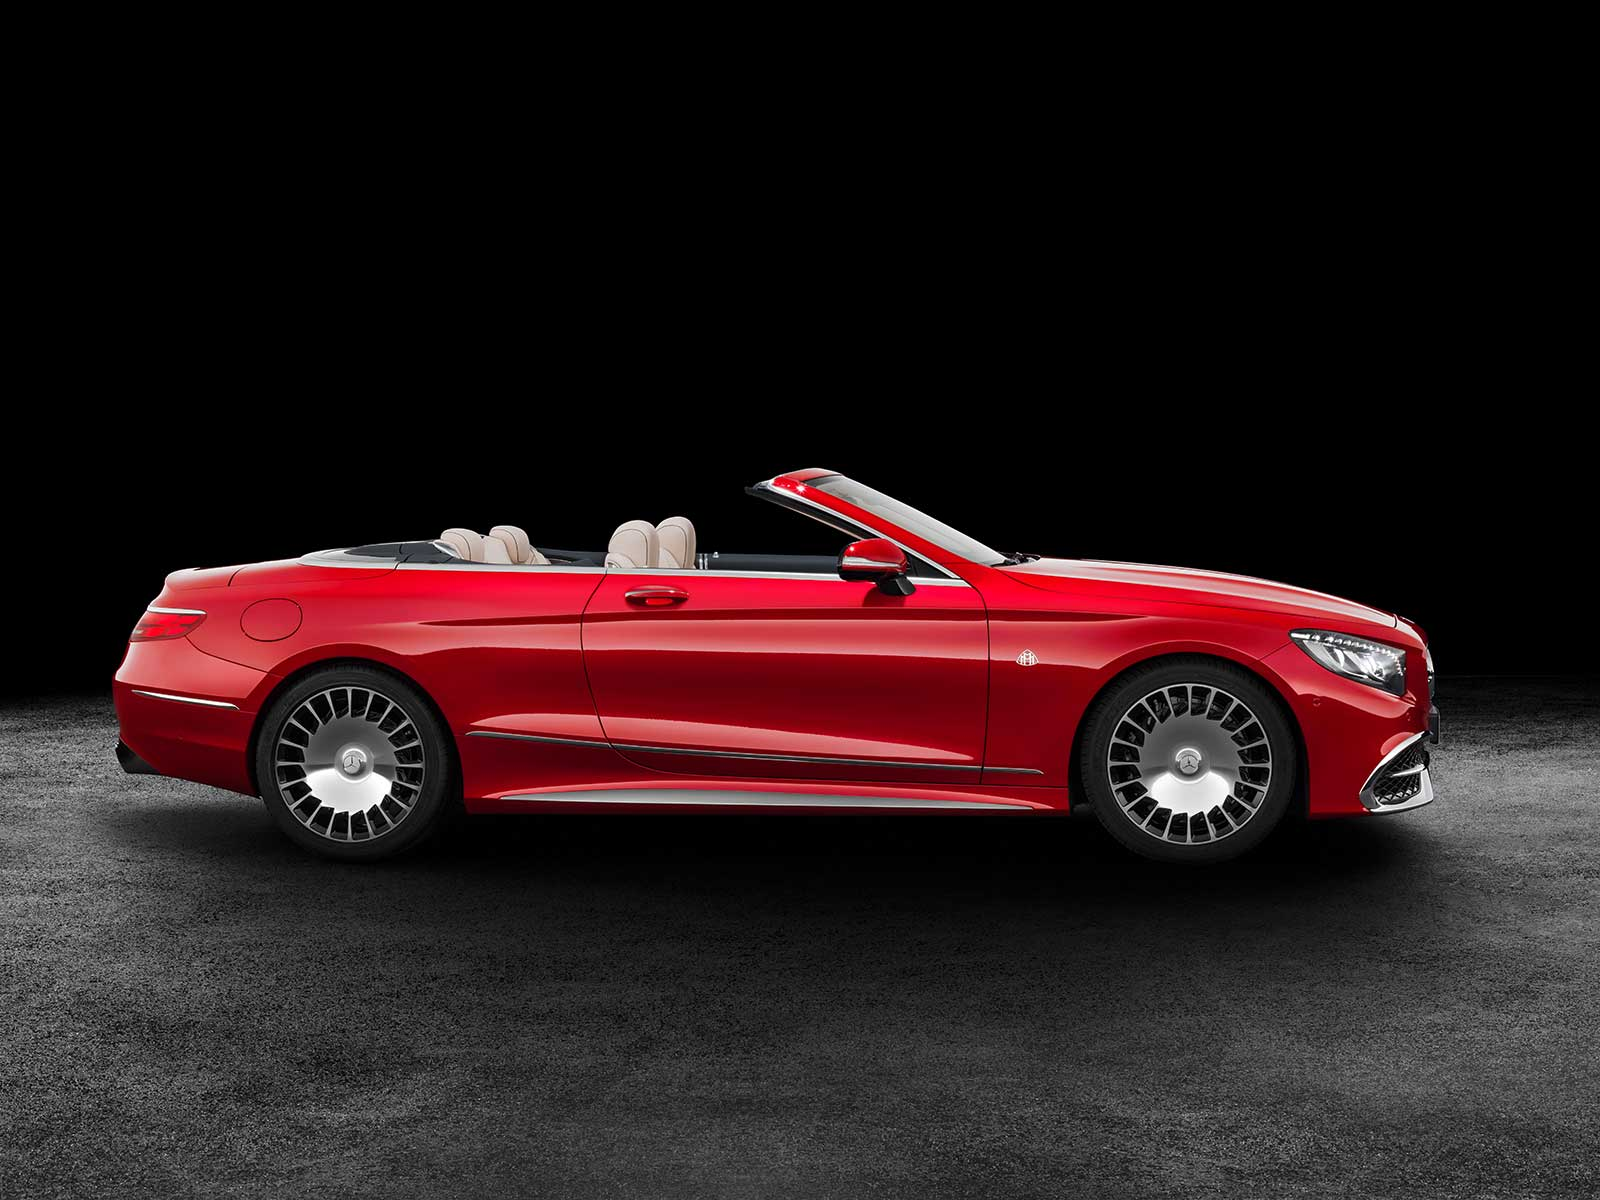 Mercedes-Maybach S650 Cabriolet Limited to Just 300 Units